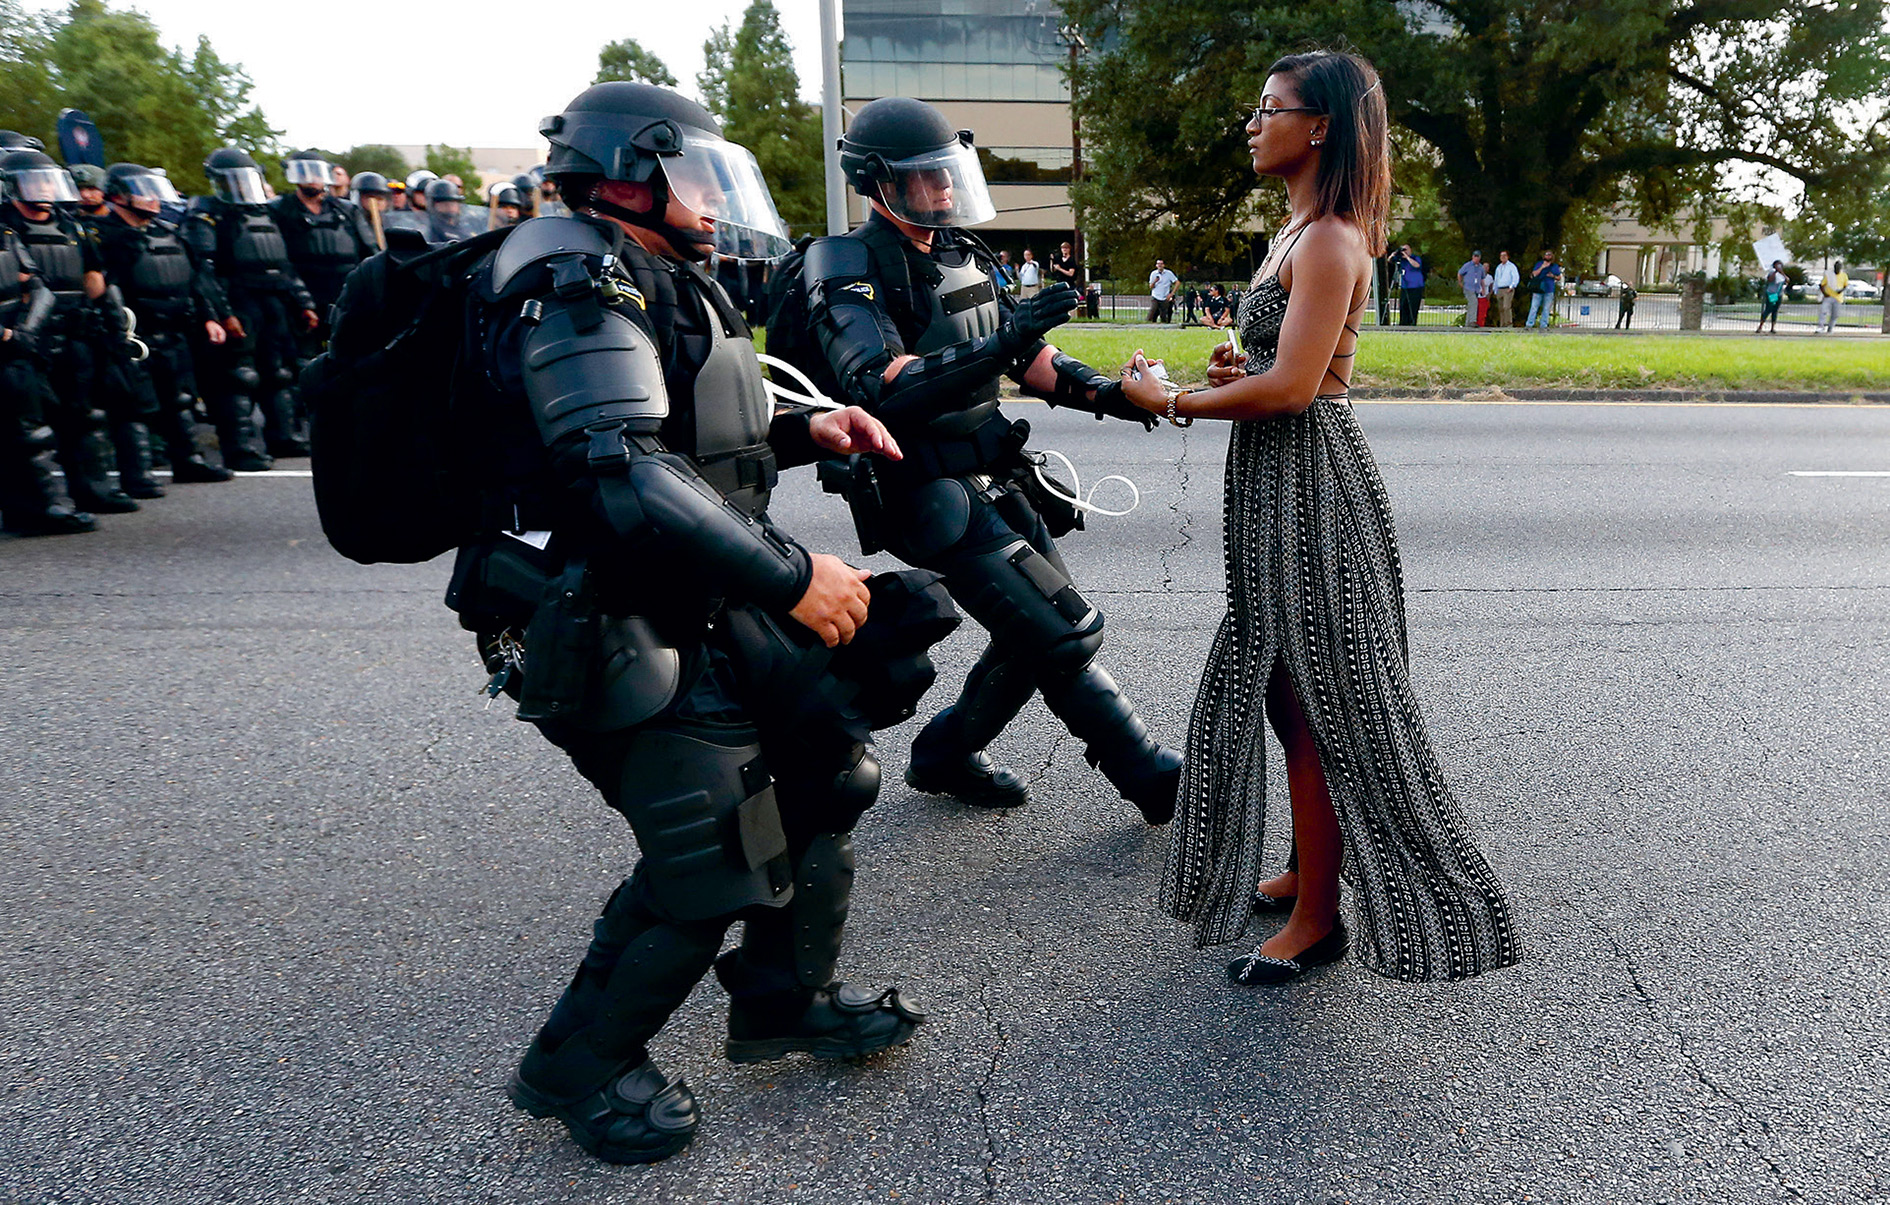 Sometimes the unarmed, but brave, have the greater power. This protester is confronting Louisiana police after the killing by police of yet another African-American youth.